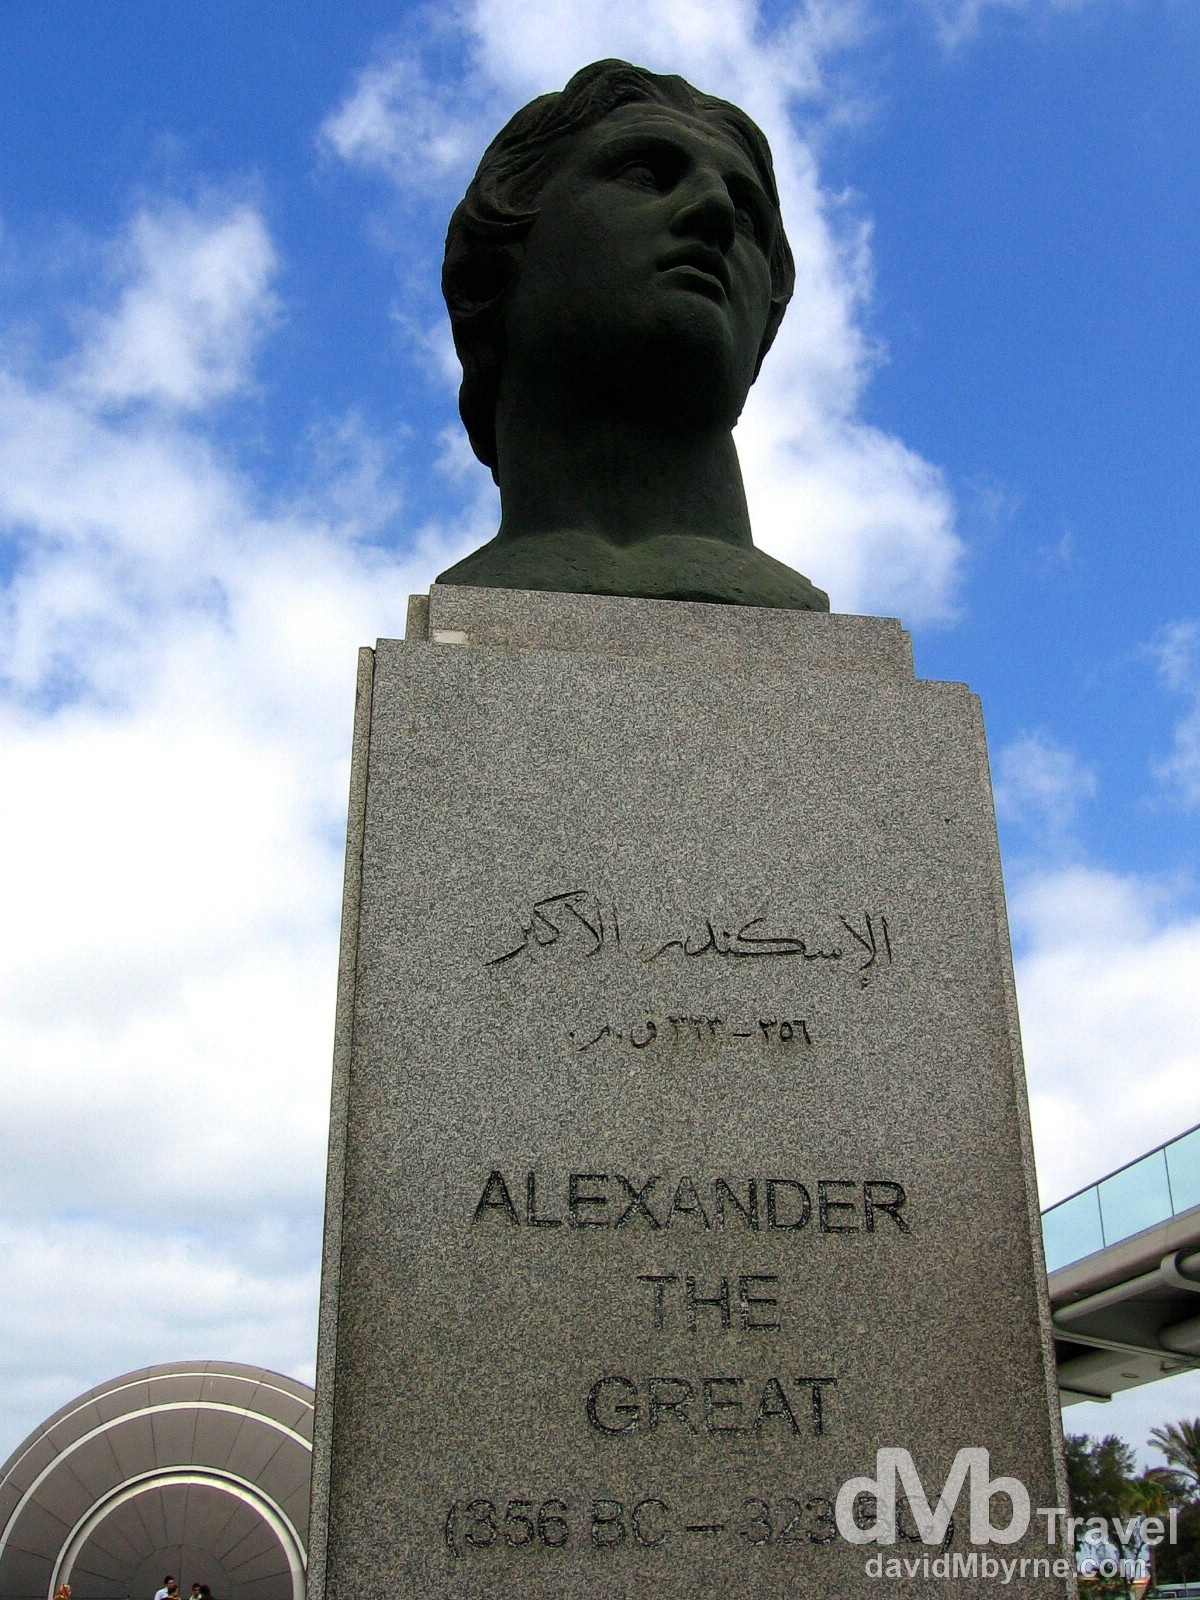 Alexander The Great, Bibliotheca Alexandrina, Alexandria, Egypt. April 16, 2008.